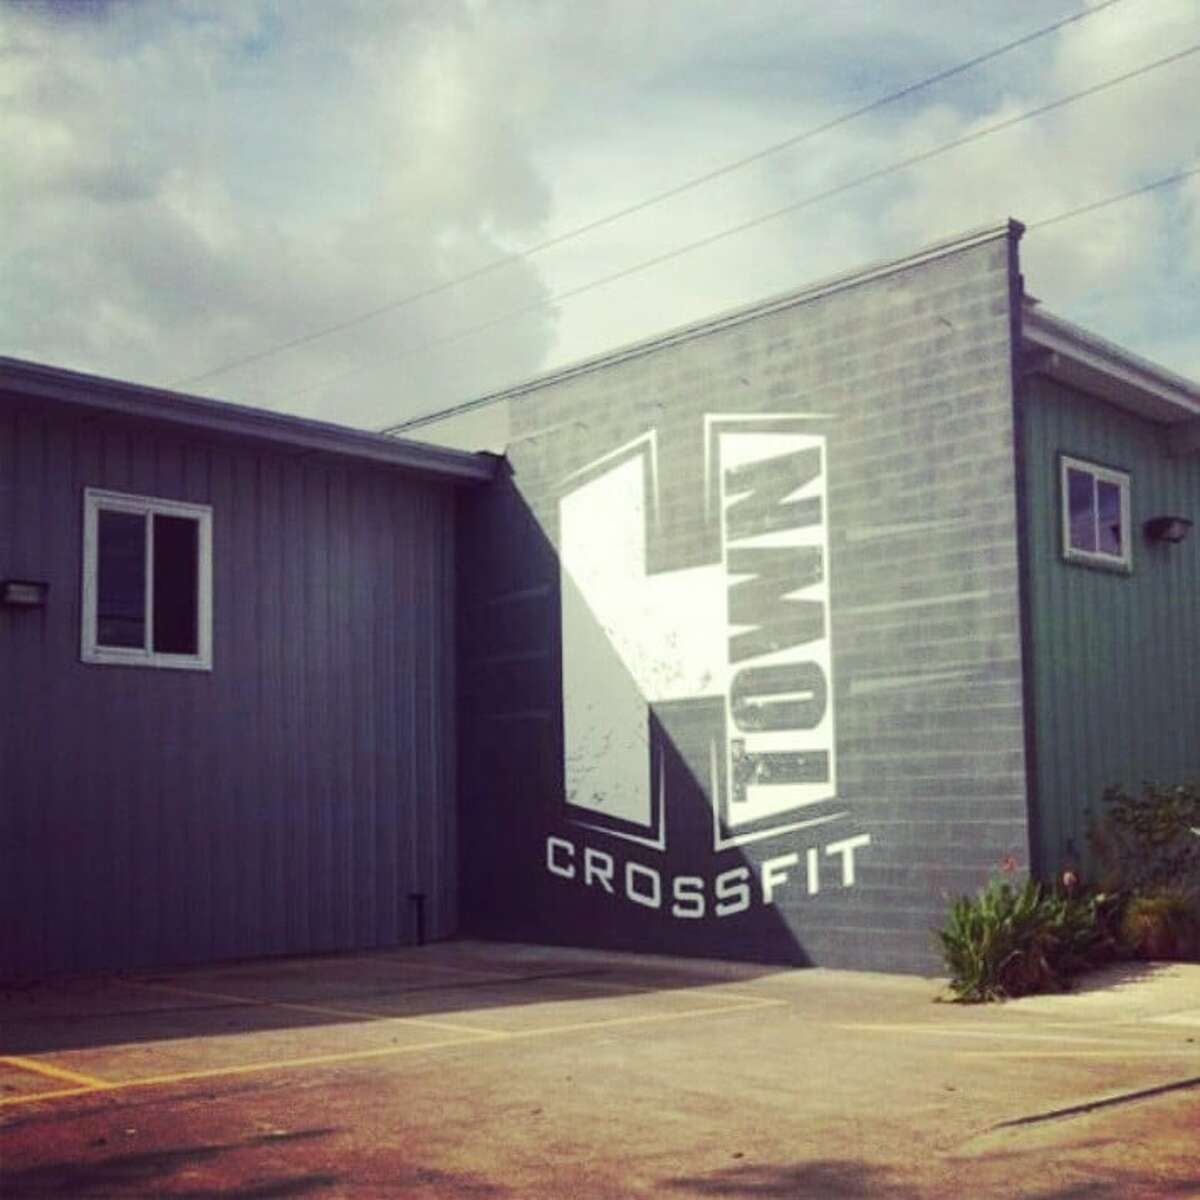 CrossFit H-Town Rating: 5 stars Address: 1919 Silver St Houston, TX 77007 Phone Number: (832) 833-0500 Website: crossfithtown.com Photo: Ray S/Yelp